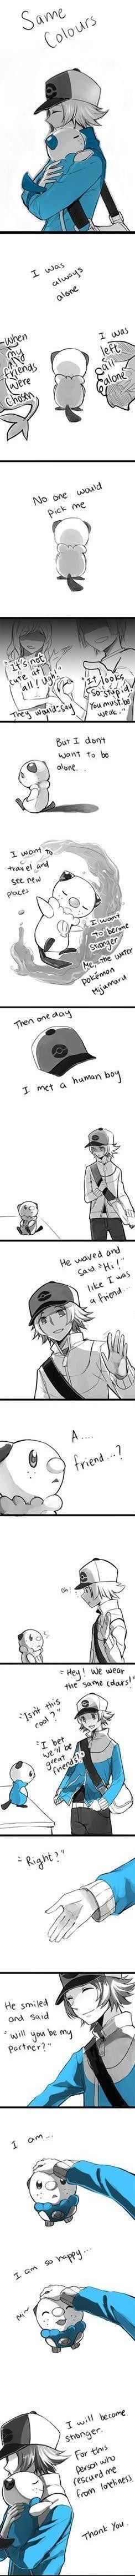 the internets oshawott comic the feels - 7294203136